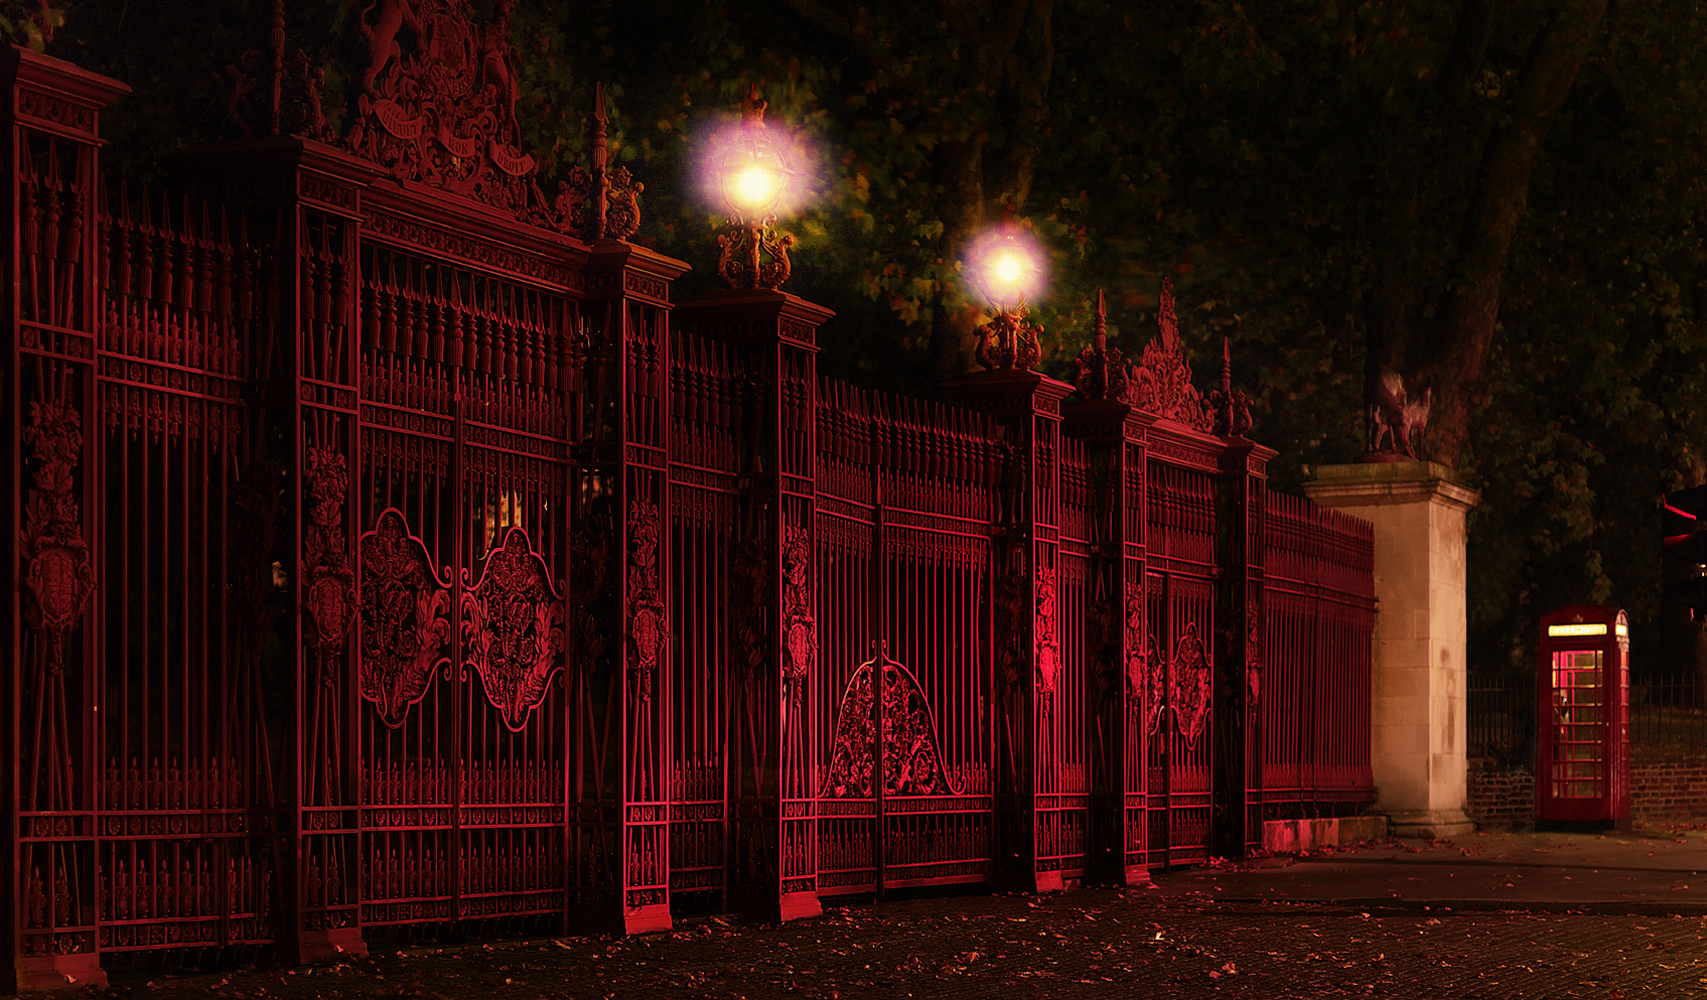 Hyde-Park-Queens-Gate#painting-#photography#fineart#popart-#peterwesth-Peter Westh-@peterwesth